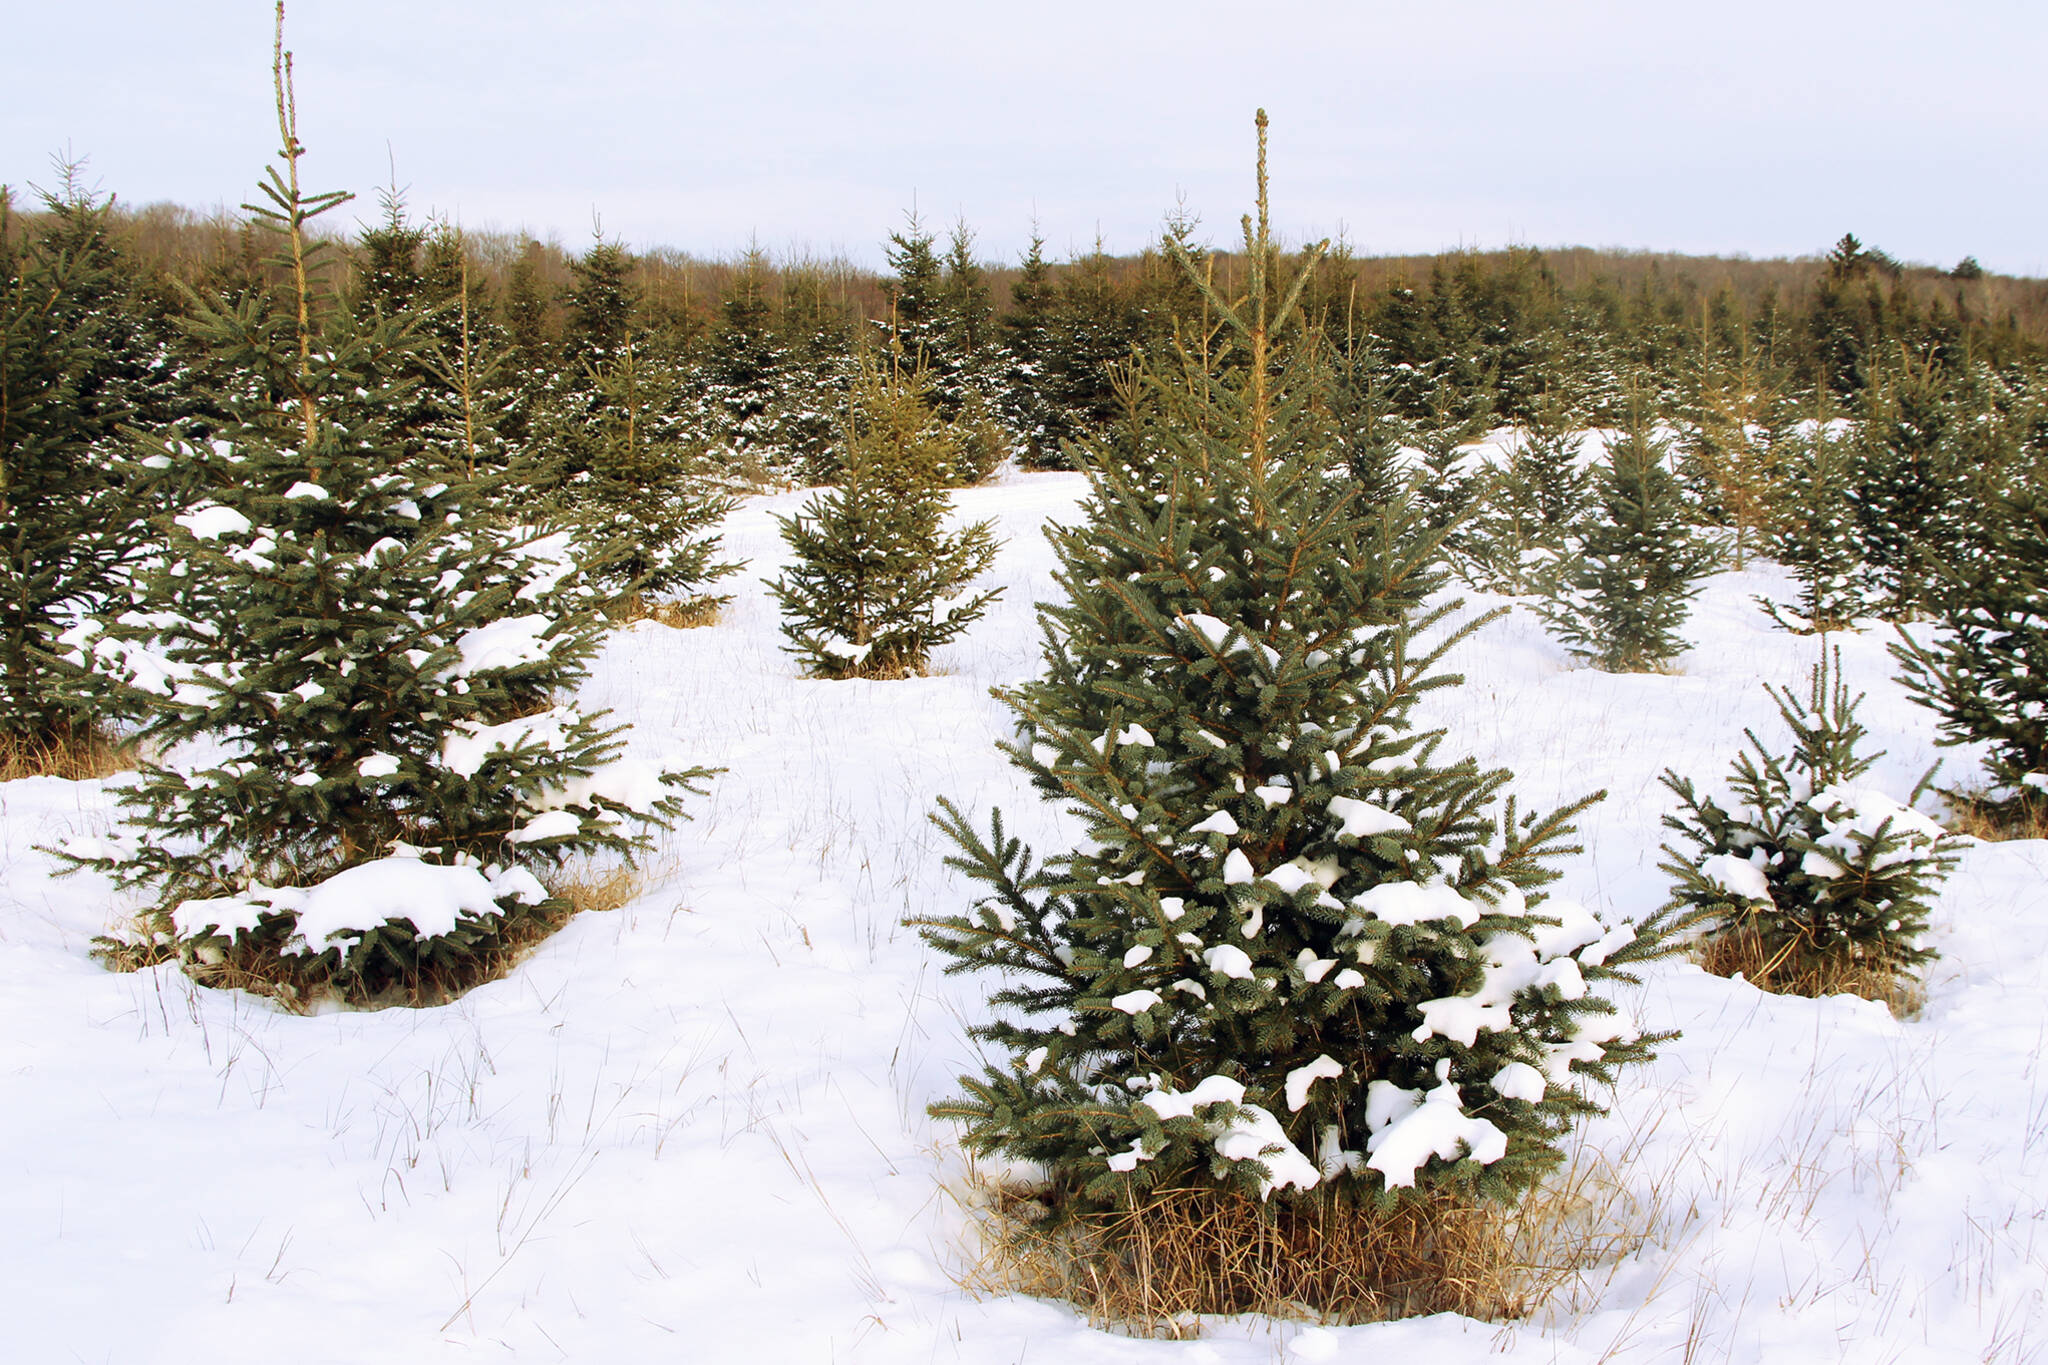 Cut Your Own Christmas Tree Near Me.10 Farms To Cut Down Your Own Christmas Tree Near Toronto